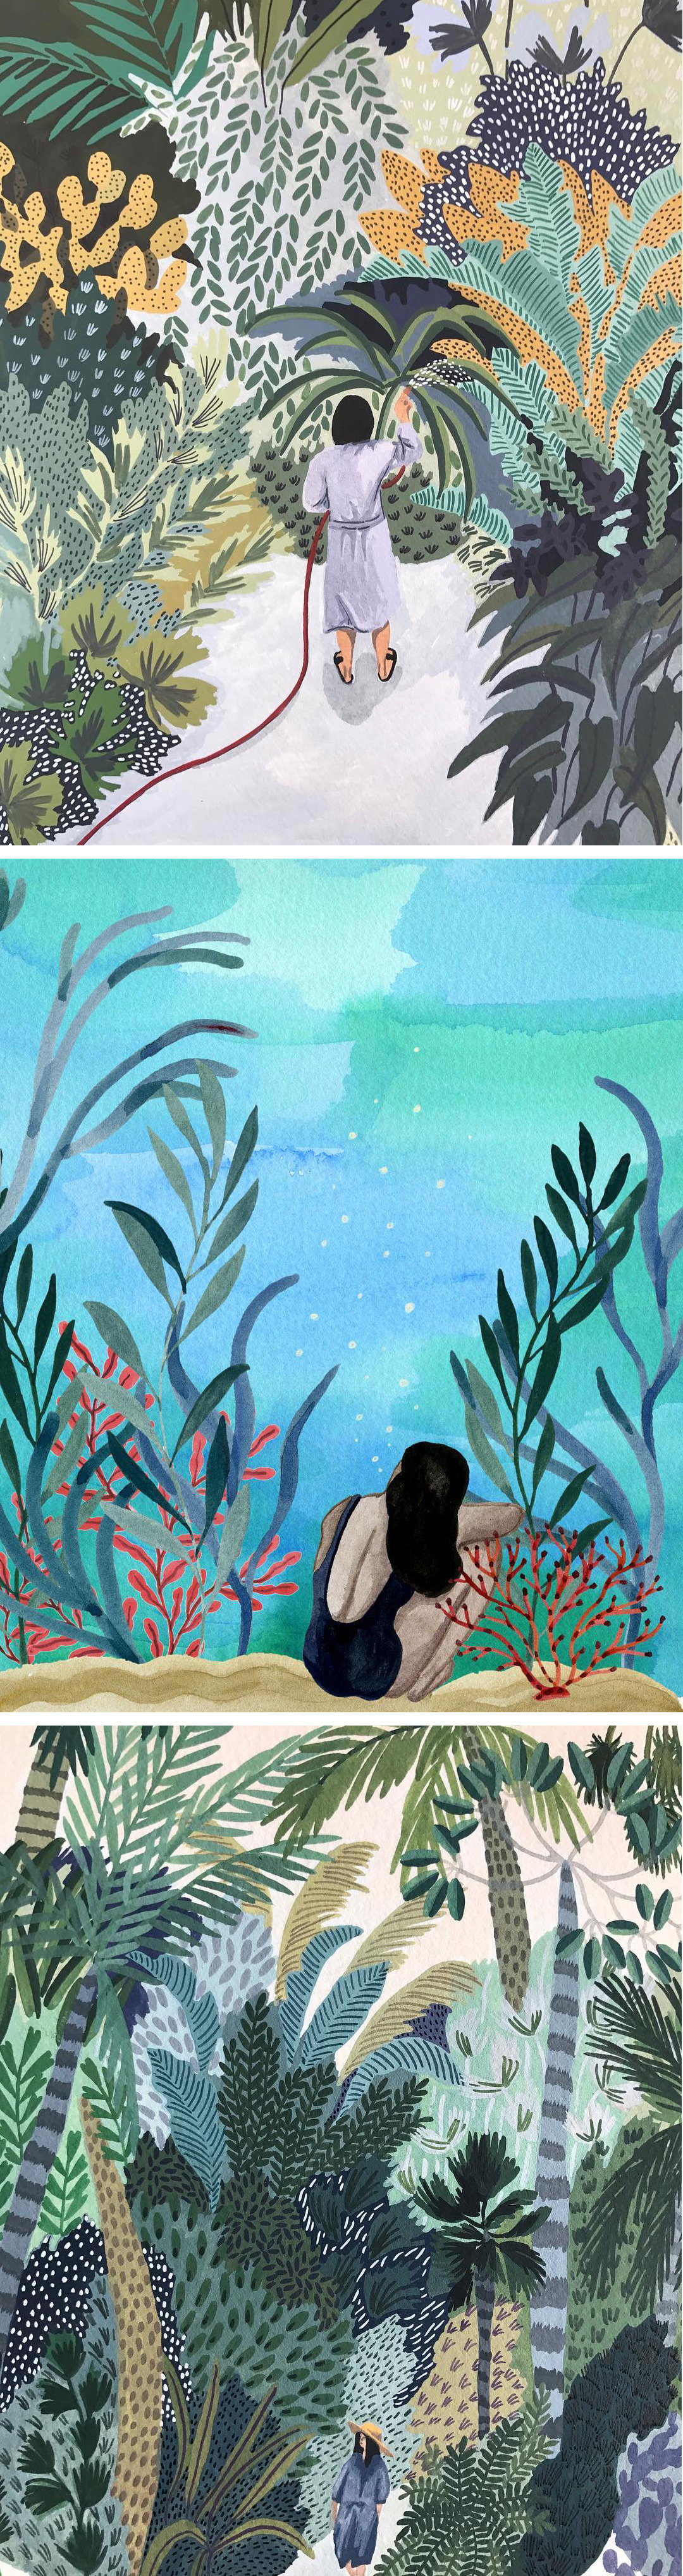 Summer illustration by Angela McKay